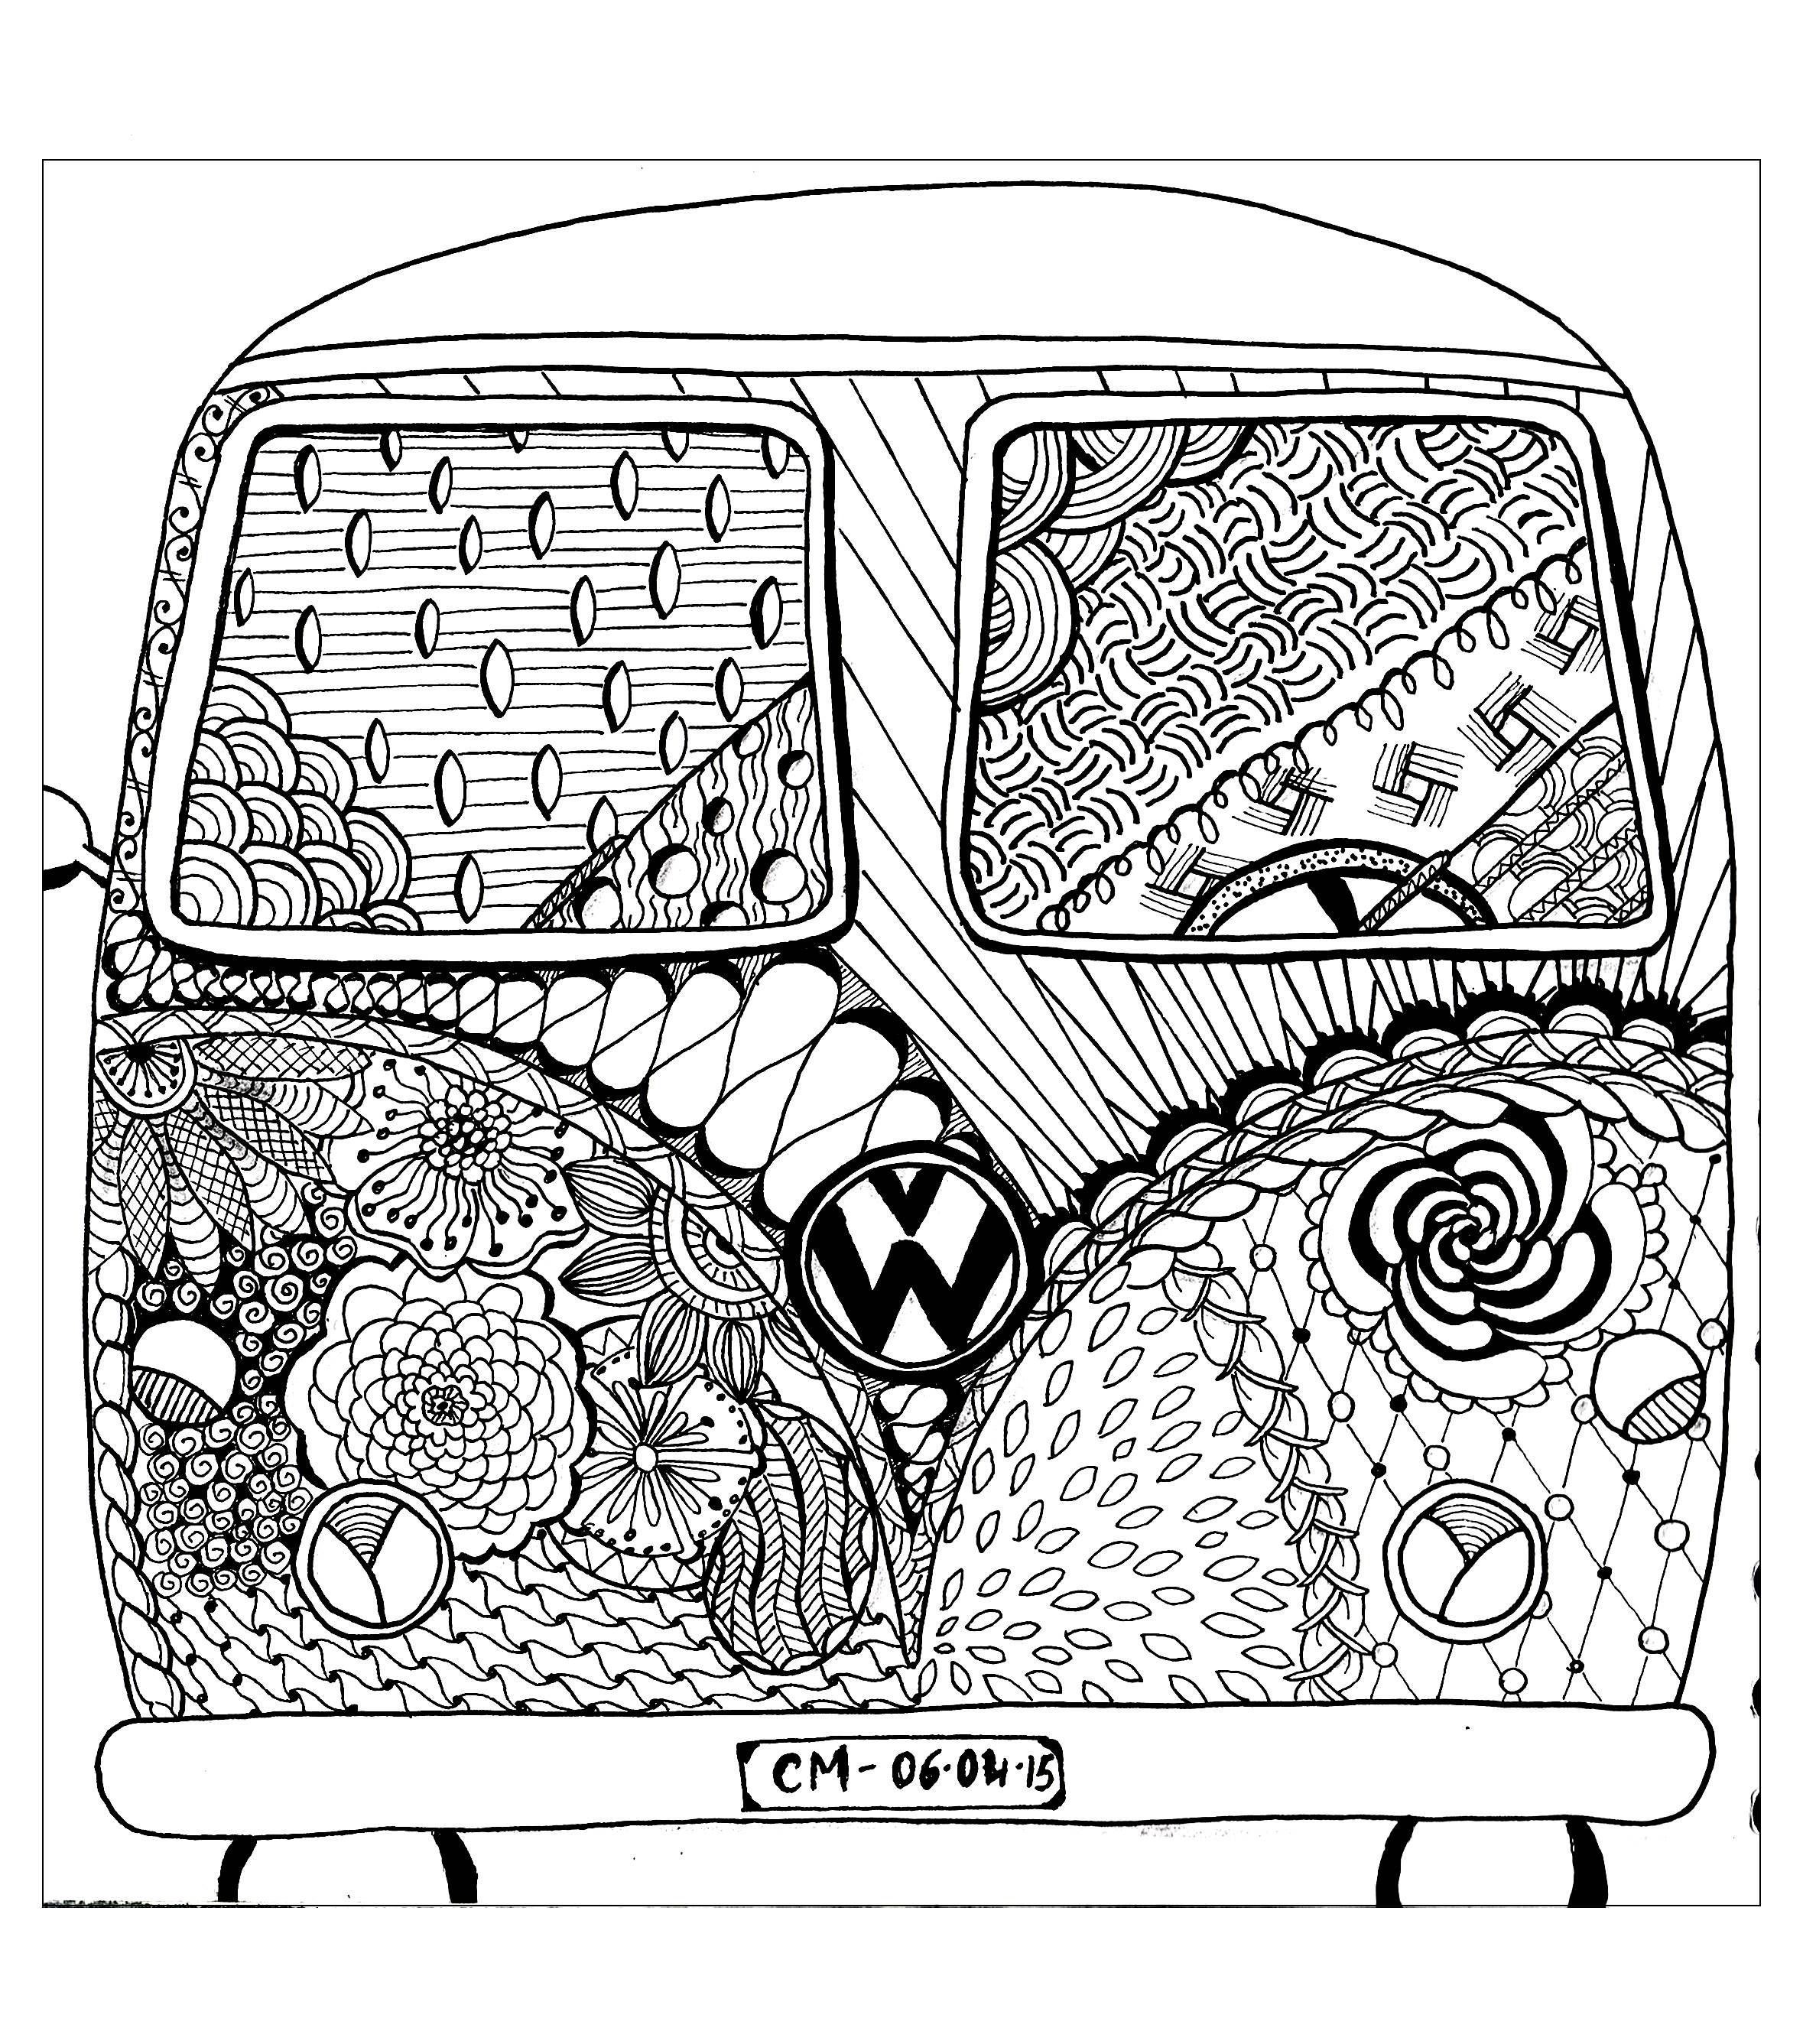 Coloring page one horse open sleigh - Free Coloring Page Coloring Cathym10 Hippie Camper Exclusive Coloring Page By